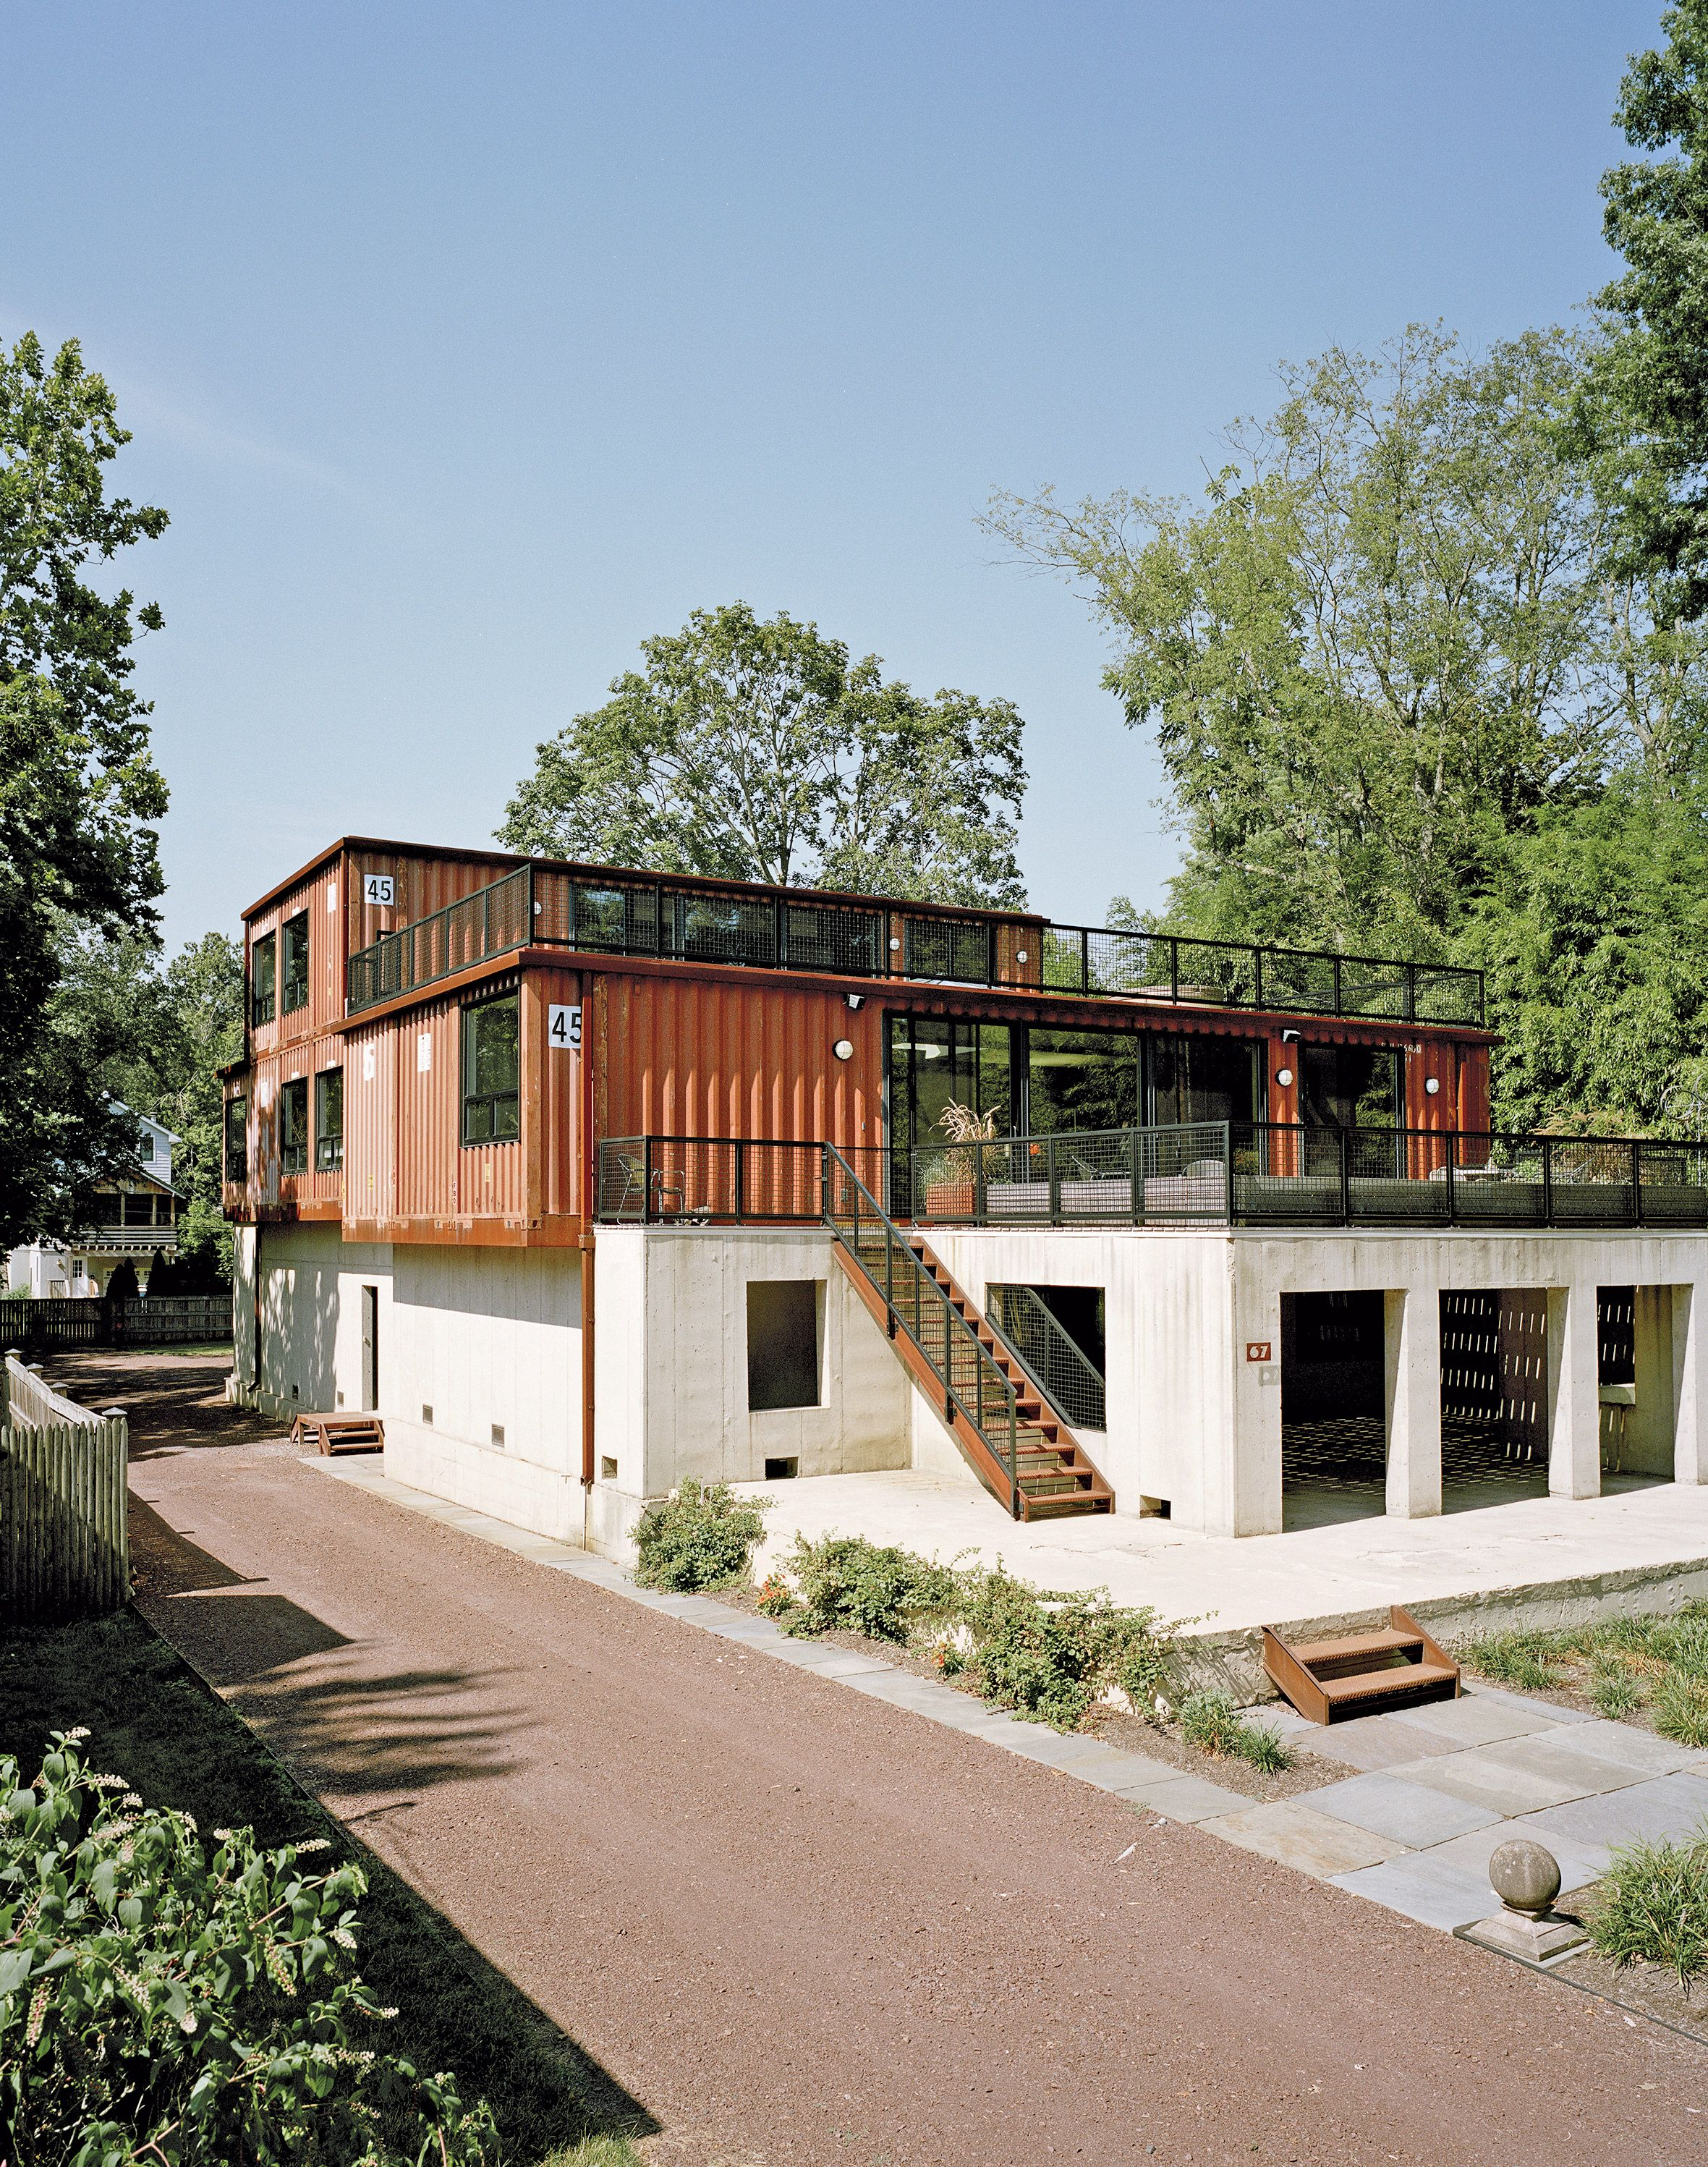 Best Kitchen Gallery: Shipping Container Home In Pennsylvania Off The Delaware River of Container Storage Homes  on rachelxblog.com